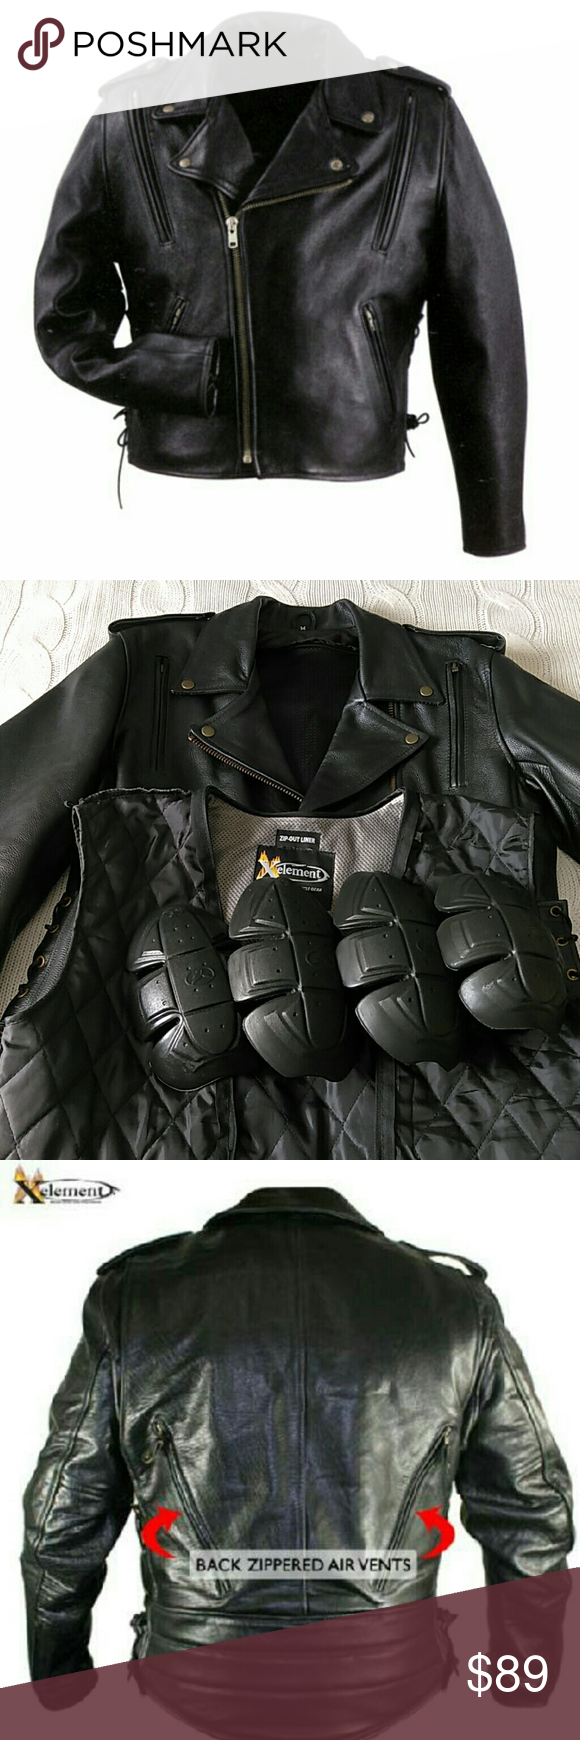 New Leather Motorcycle Jacket Pads Vest Pinterest Motorcycle